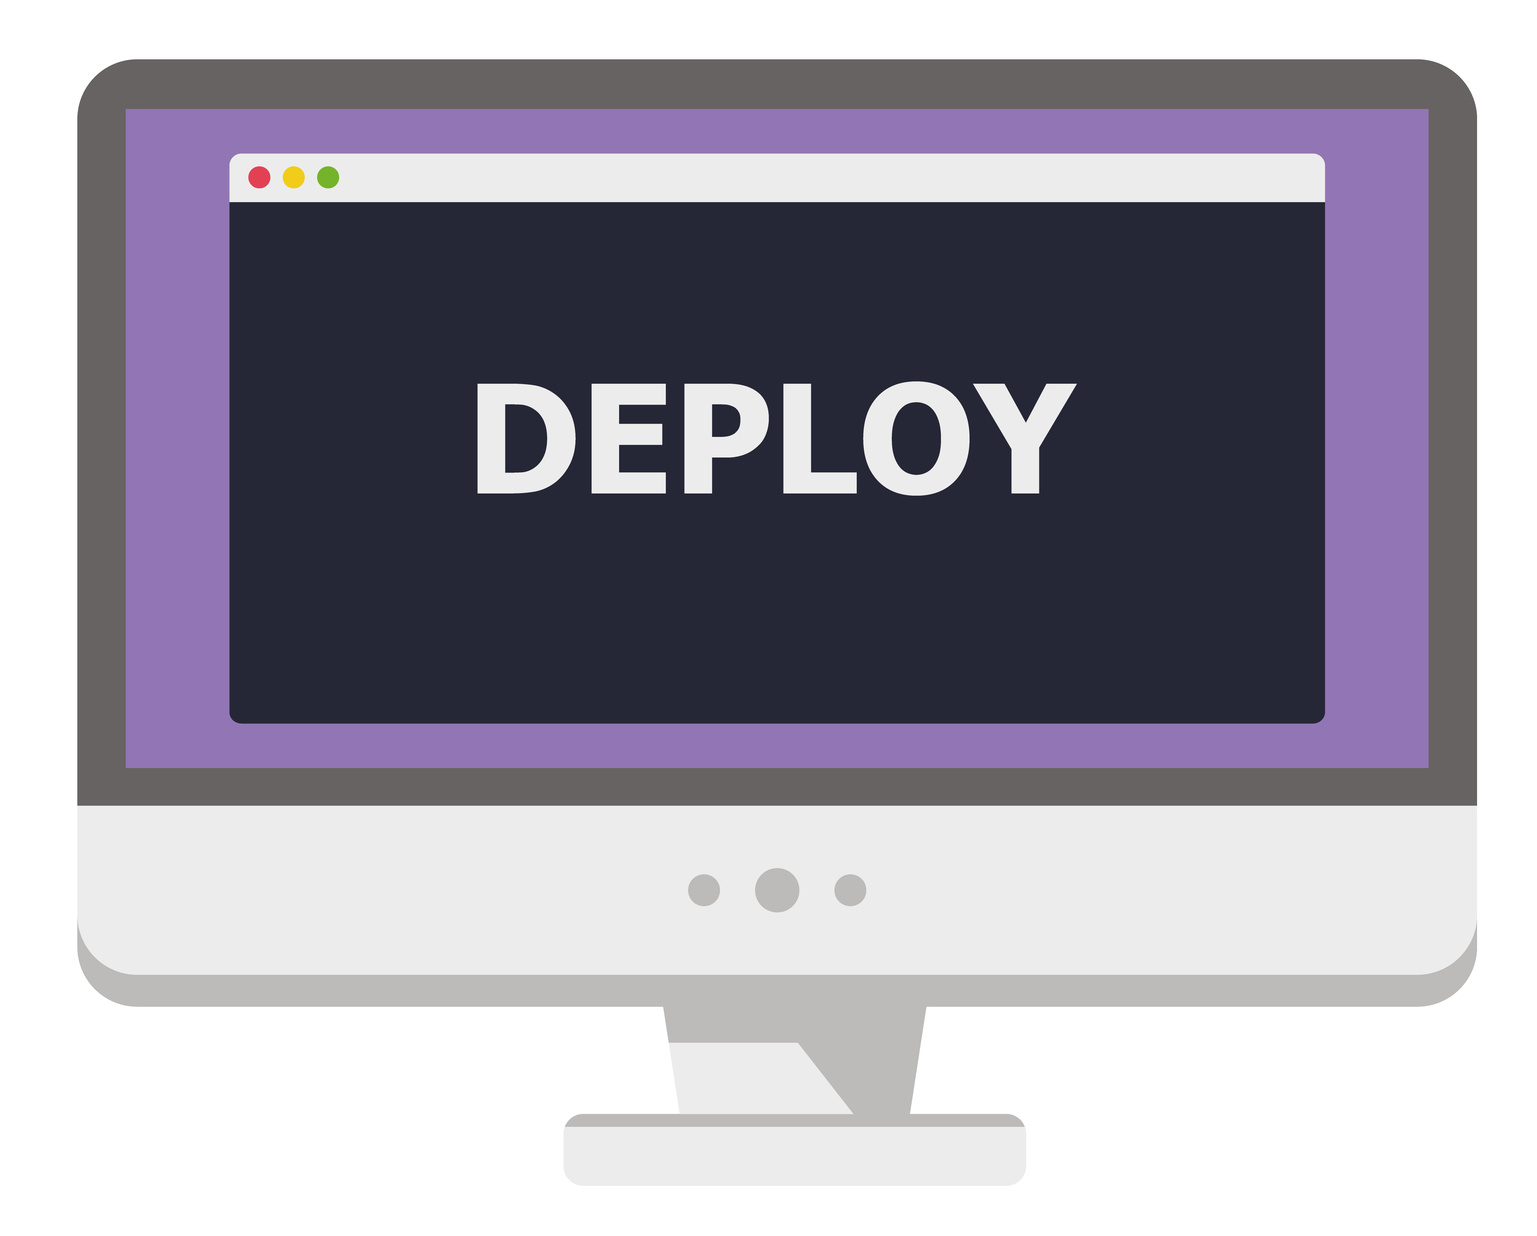 vector illustration of personal computer display showing window with deploy title isolated on white